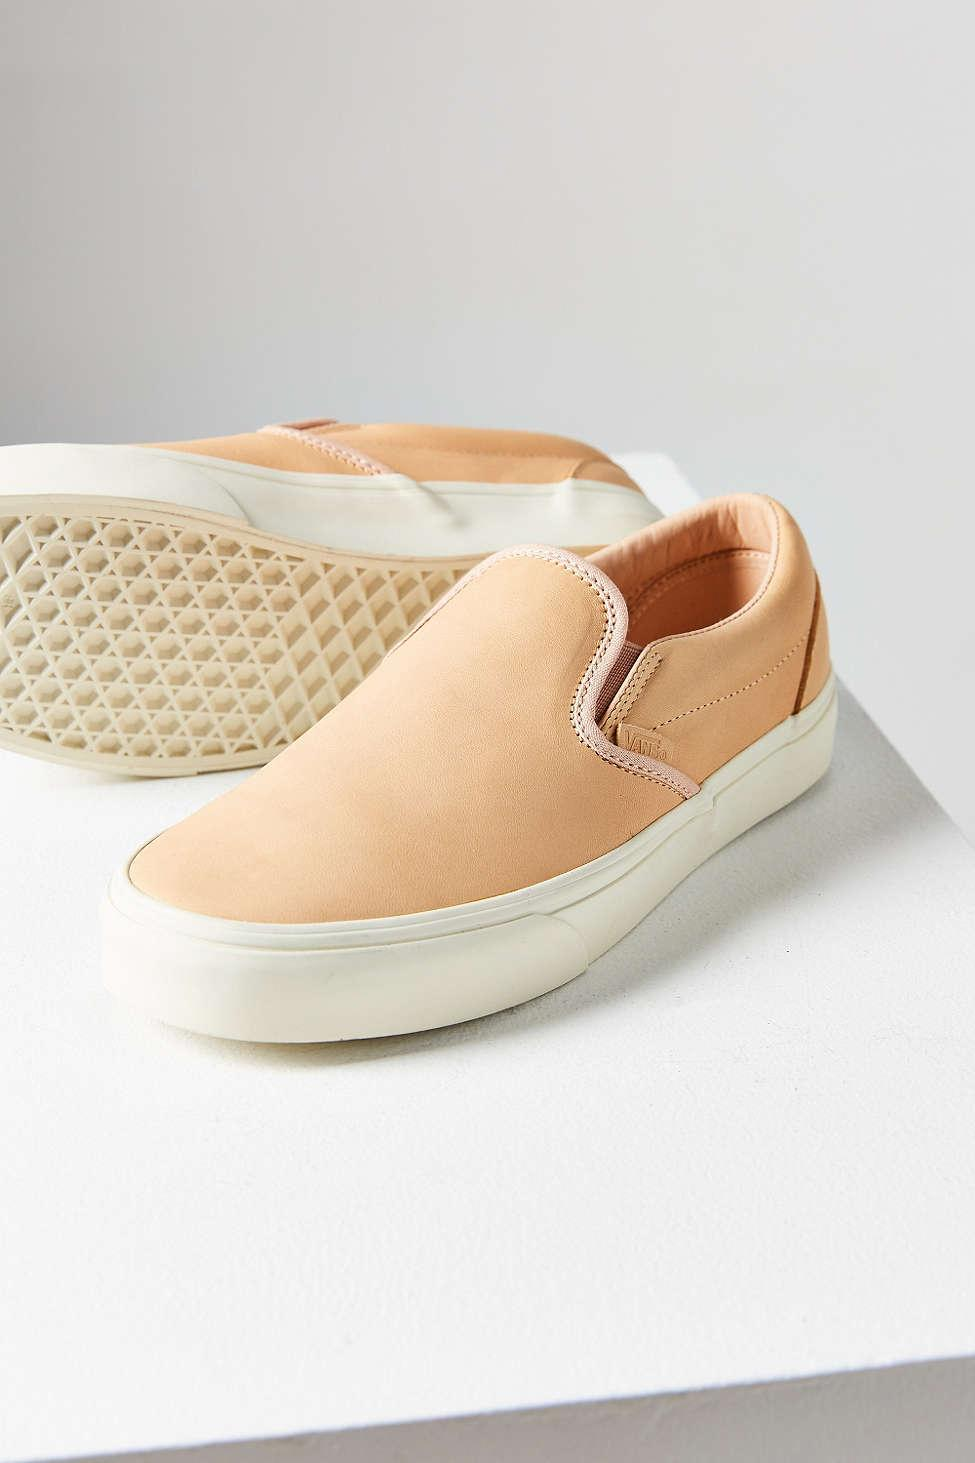 dadb646504 Lyst - Vans Veggie Tan Leather Classic Slip-on Sneaker